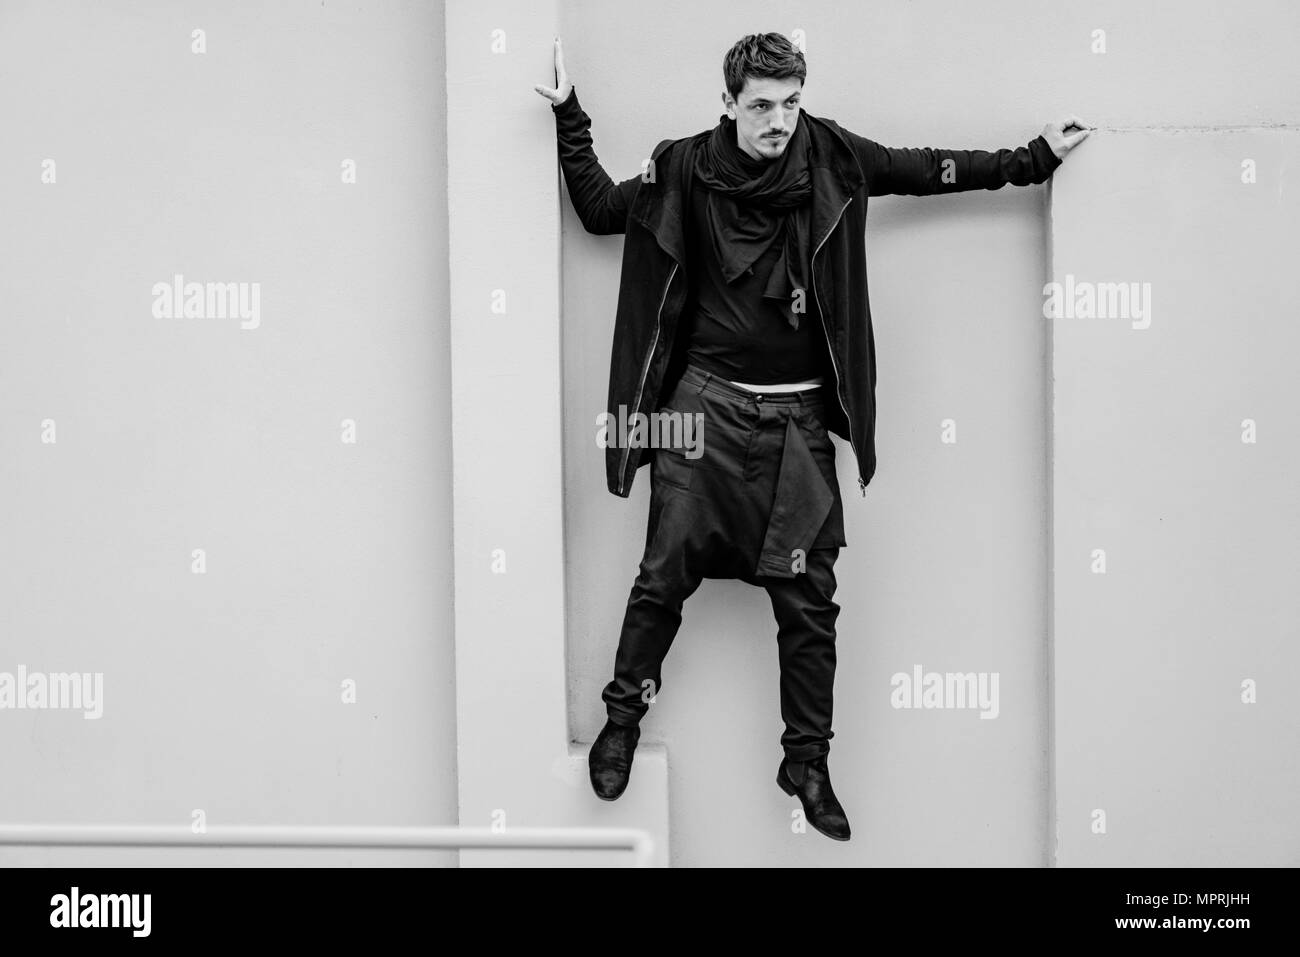 Fashionable man dressed in black - Stock Image